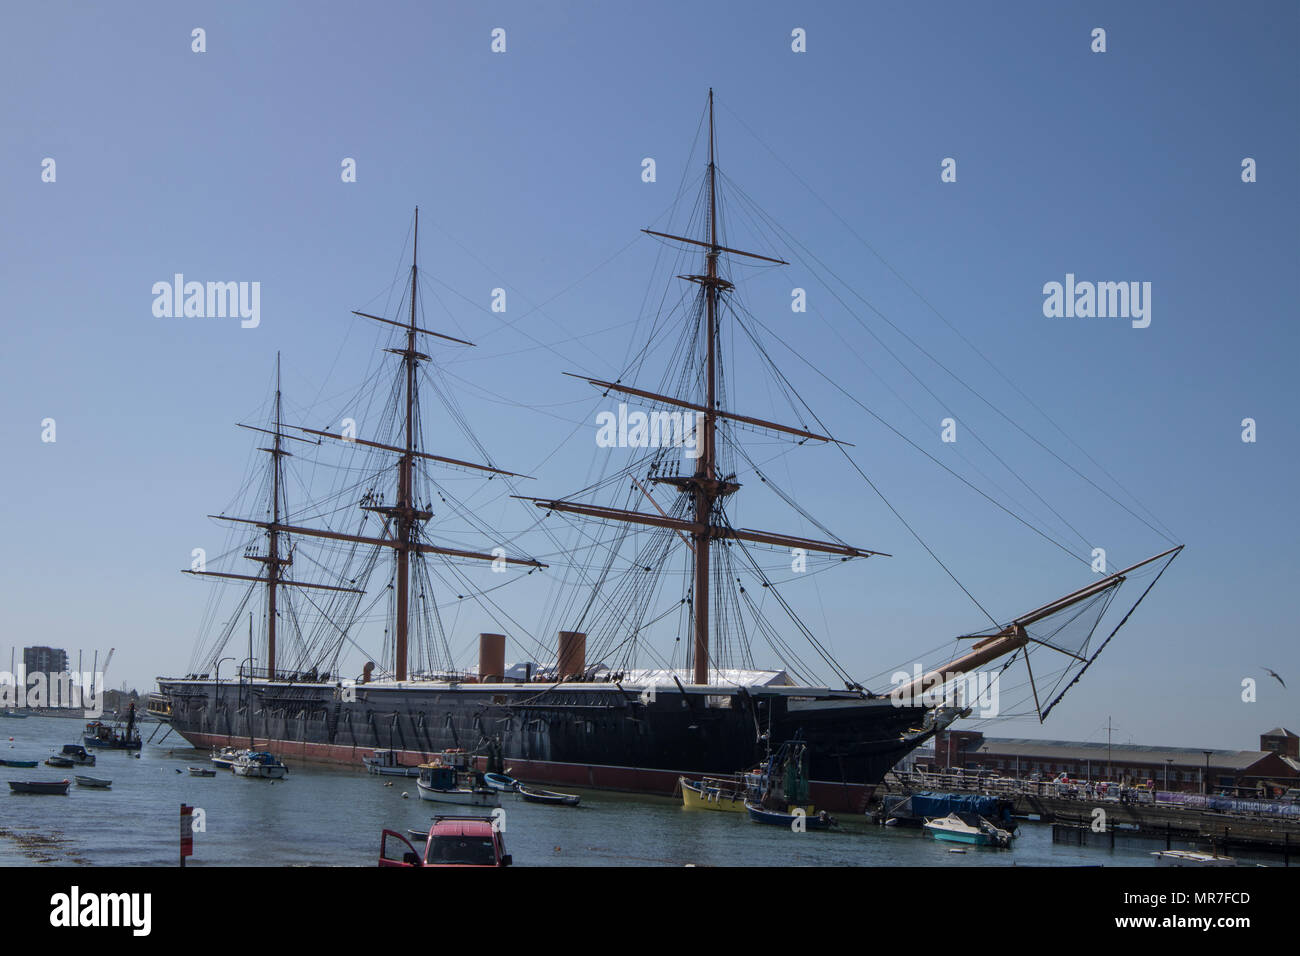 HMS Warrior in Portsmouth Historic Dockyards, Sussex, UK Stock Photo